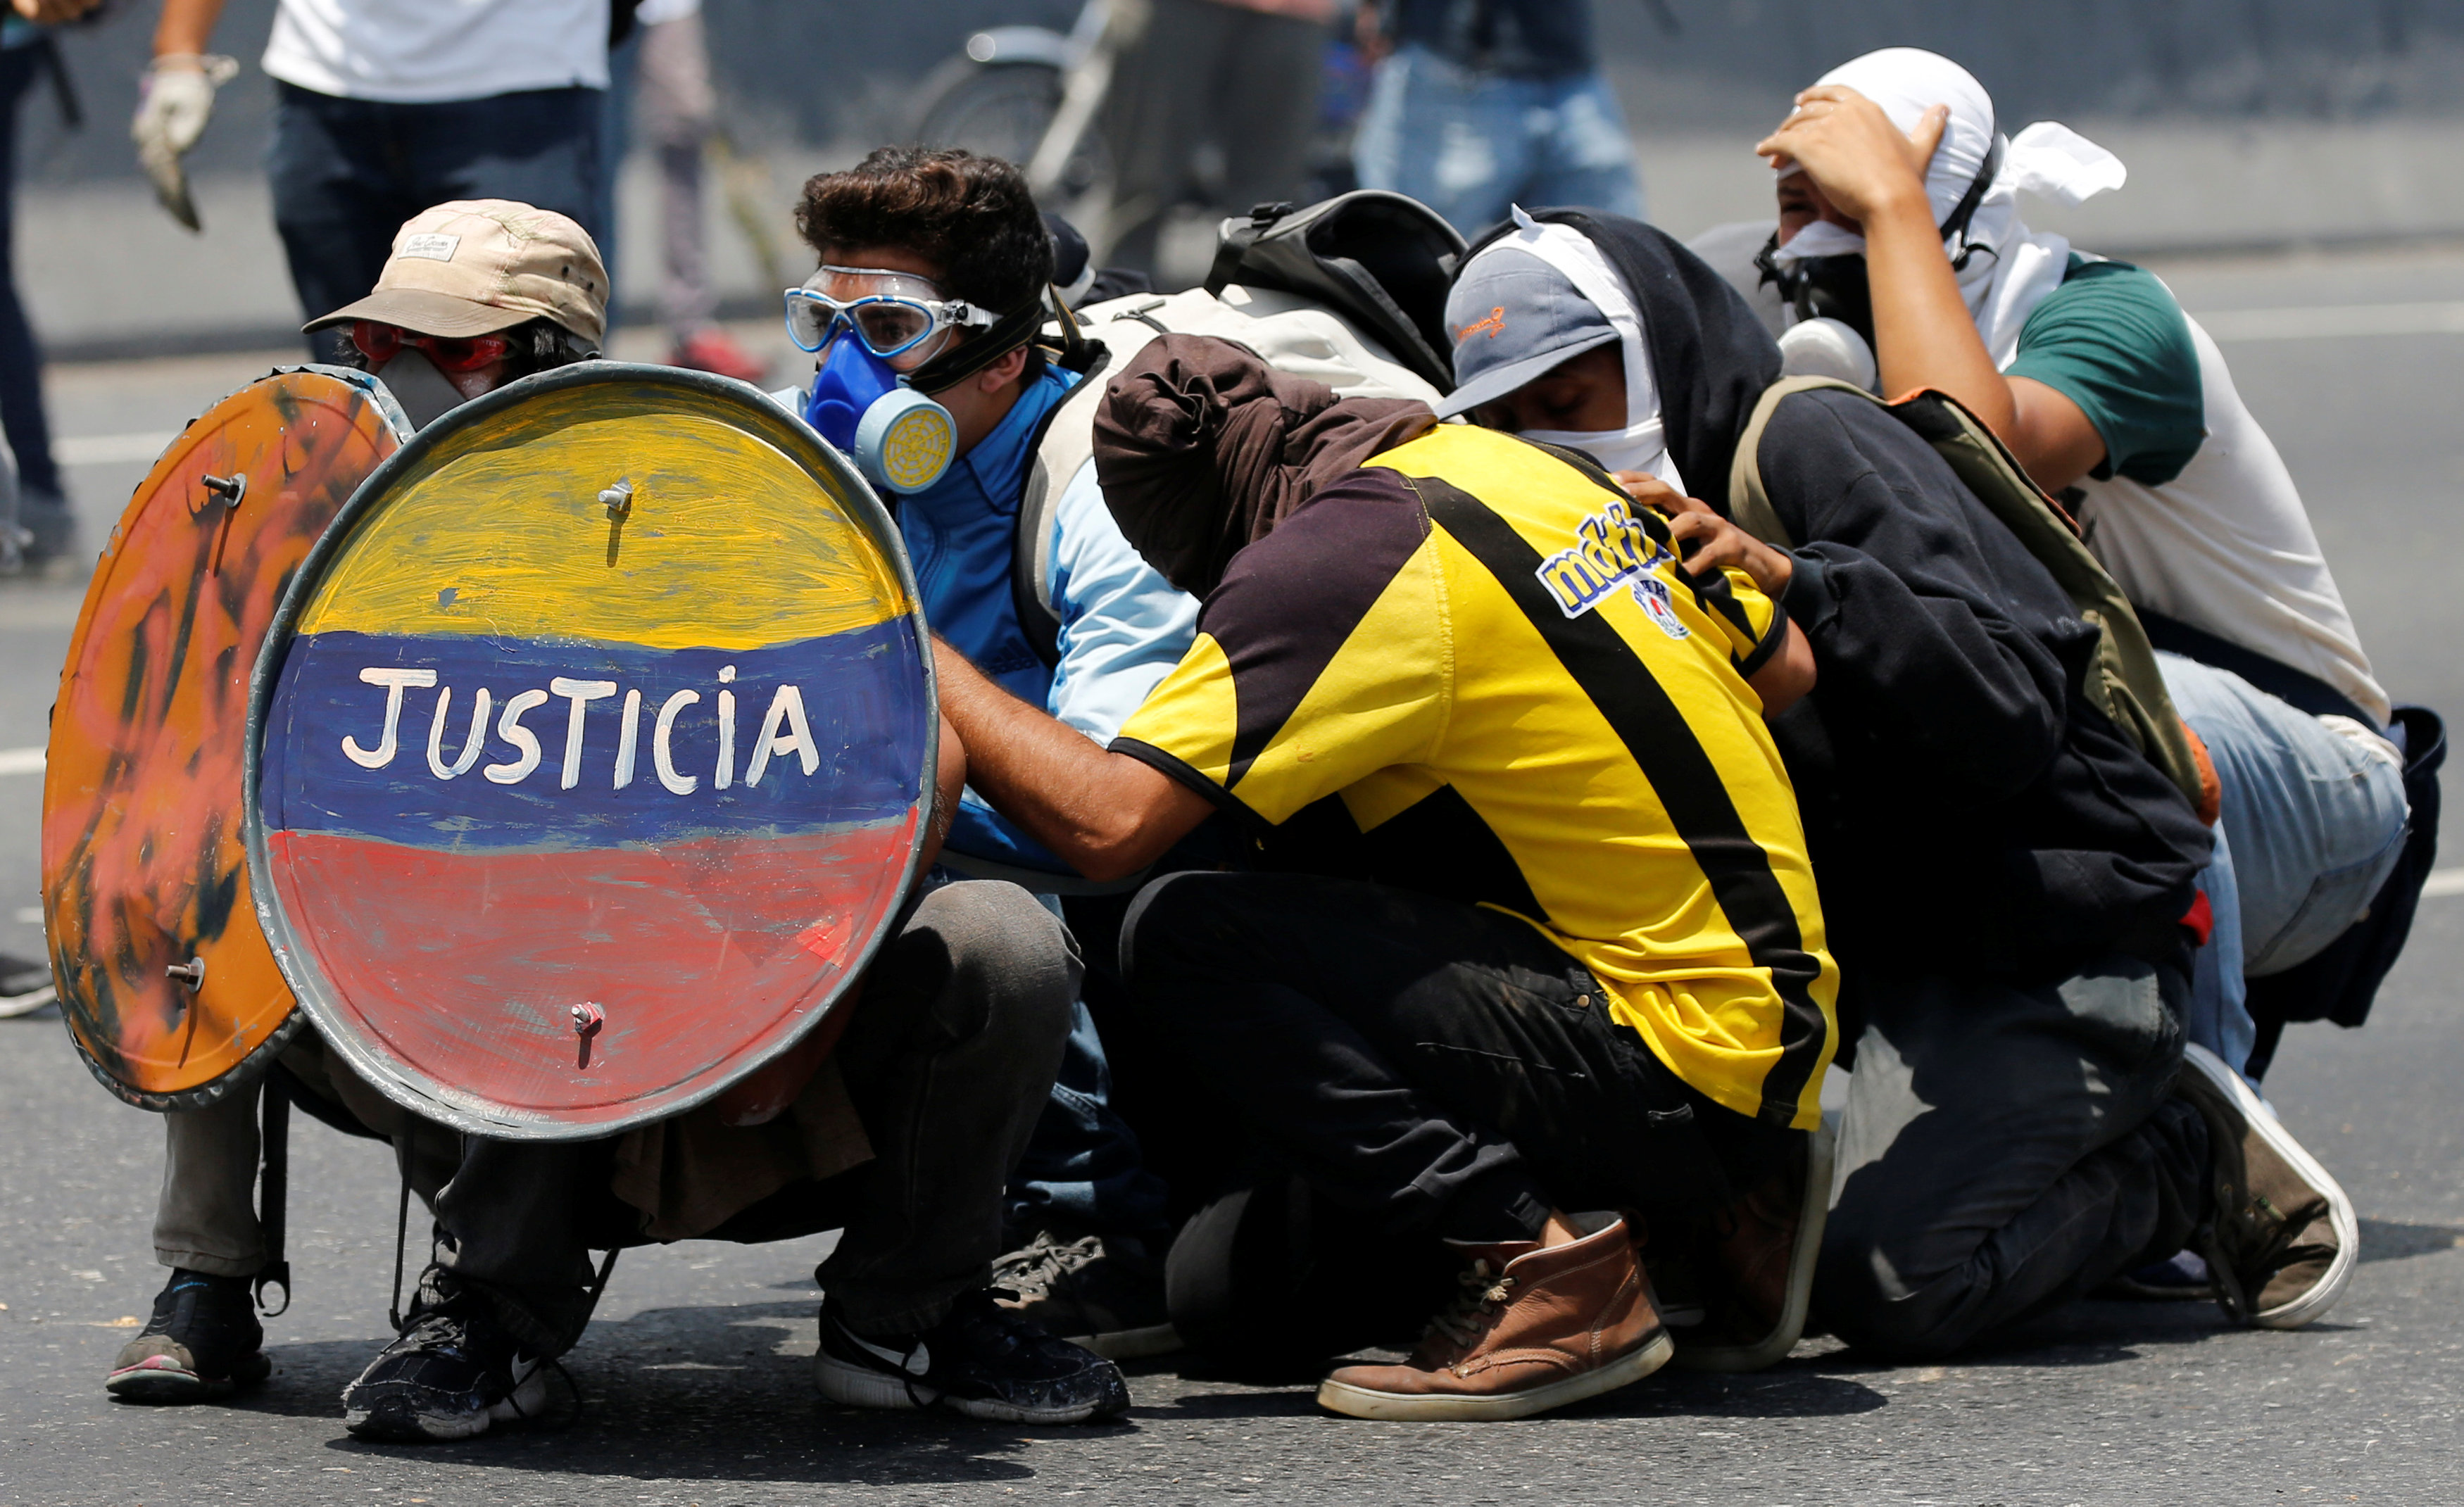 """Opposition supporters use a shield reading """"Justice"""" as they clash with security forces during a rally against Venezuela's President Nicolas Maduro in Caracas, Venezuela April 26, 2017. REUTERS/Carlos Garcia Rawlins"""